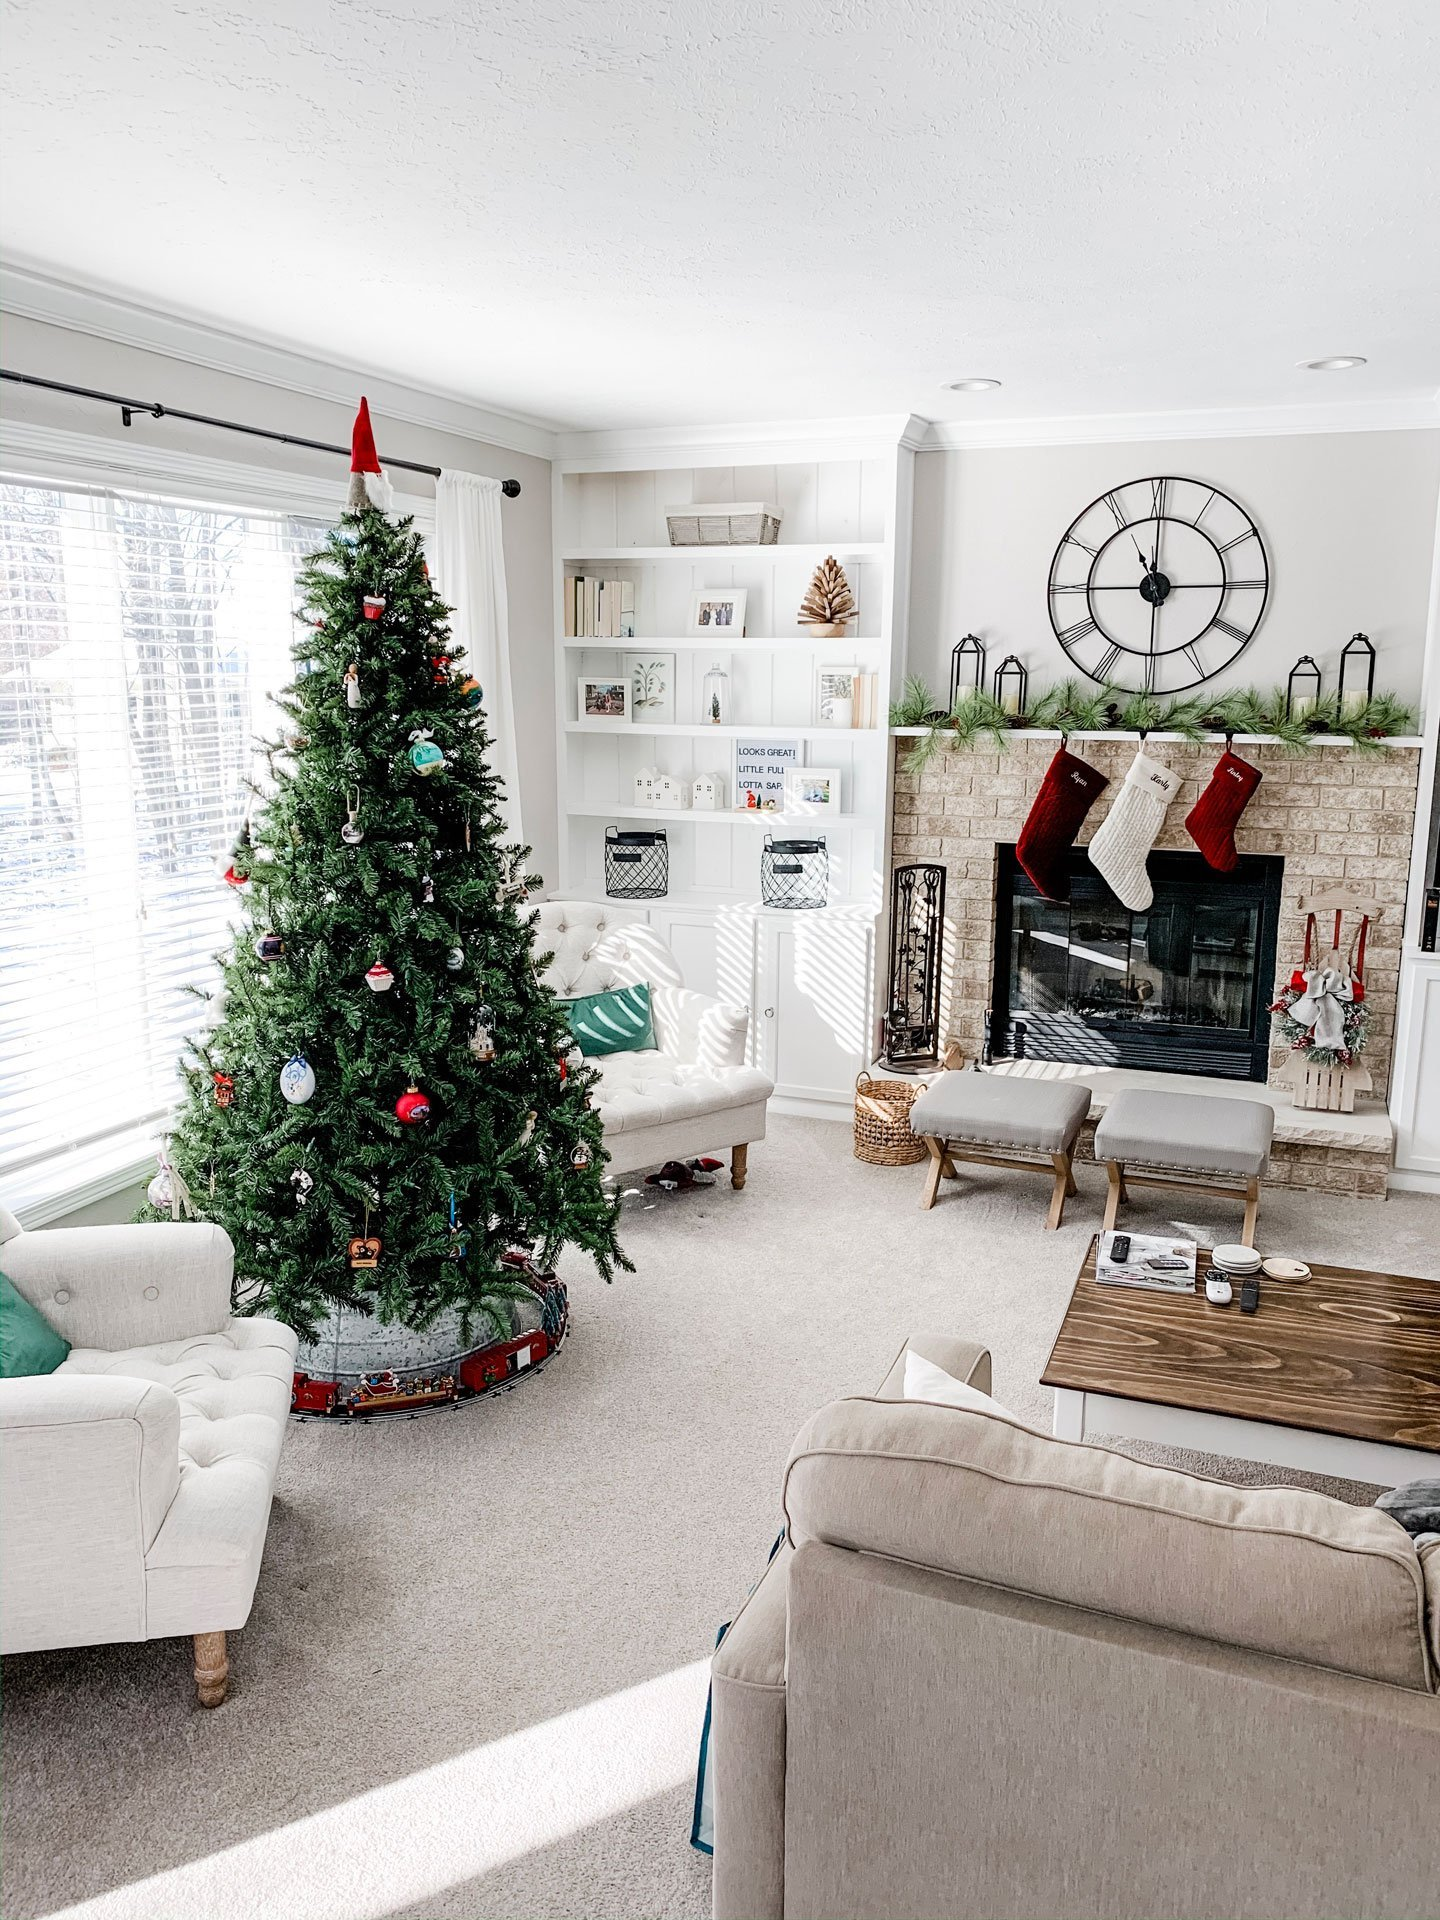 Our Home at Christmas 2019